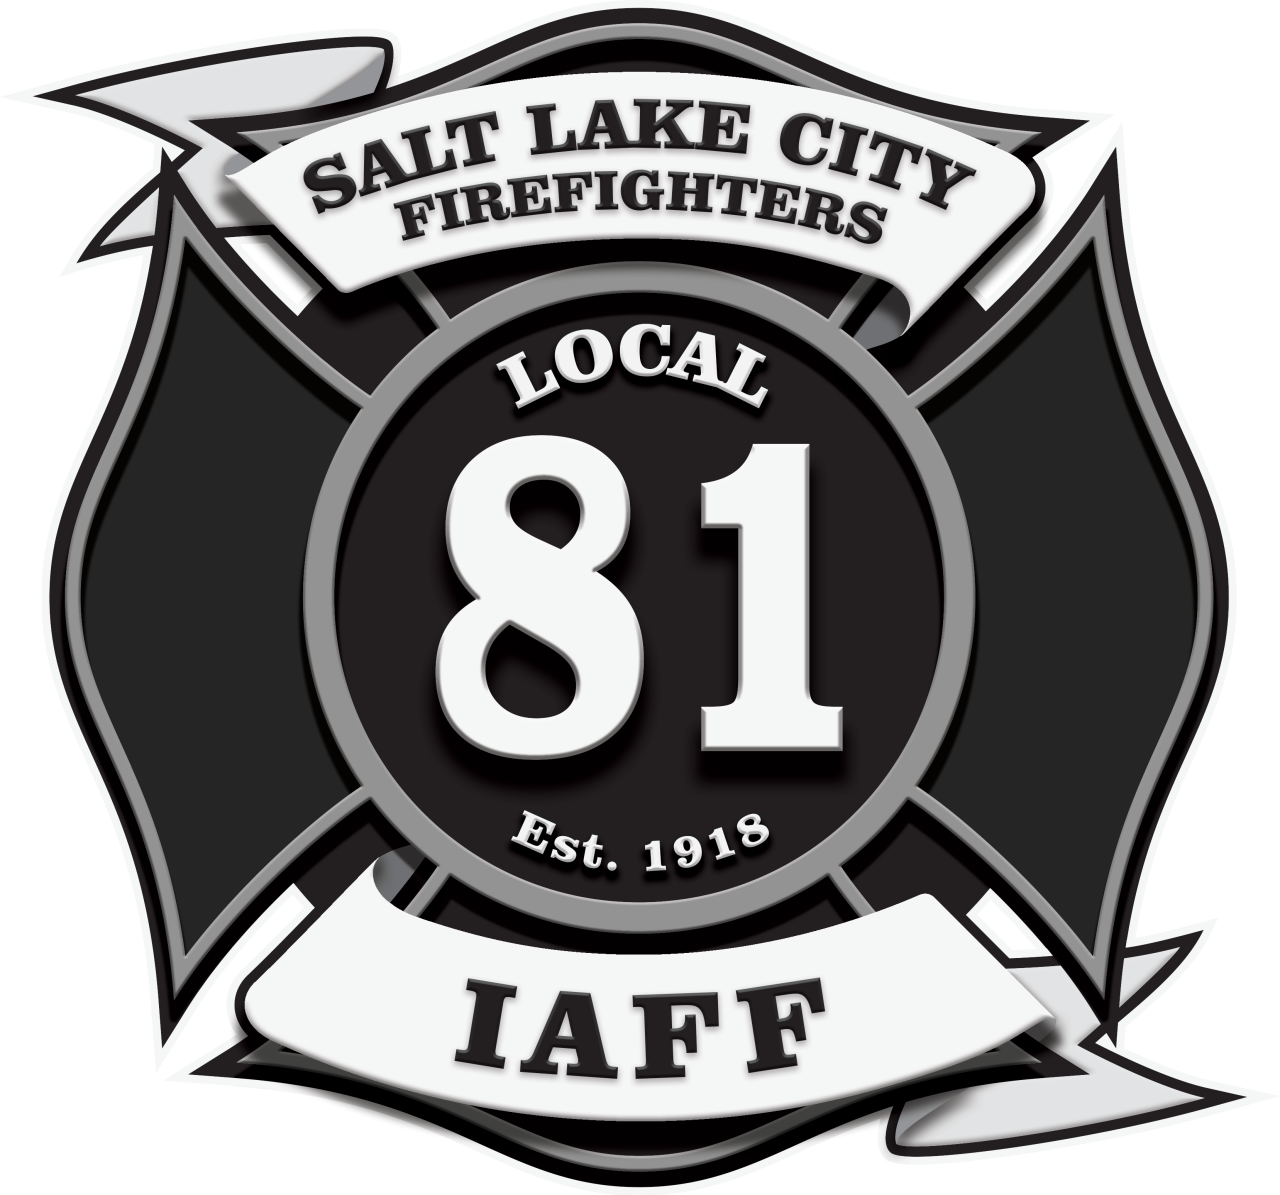 Cal fire logo black and white clipart svg Salt Lake City Fire Fighters svg